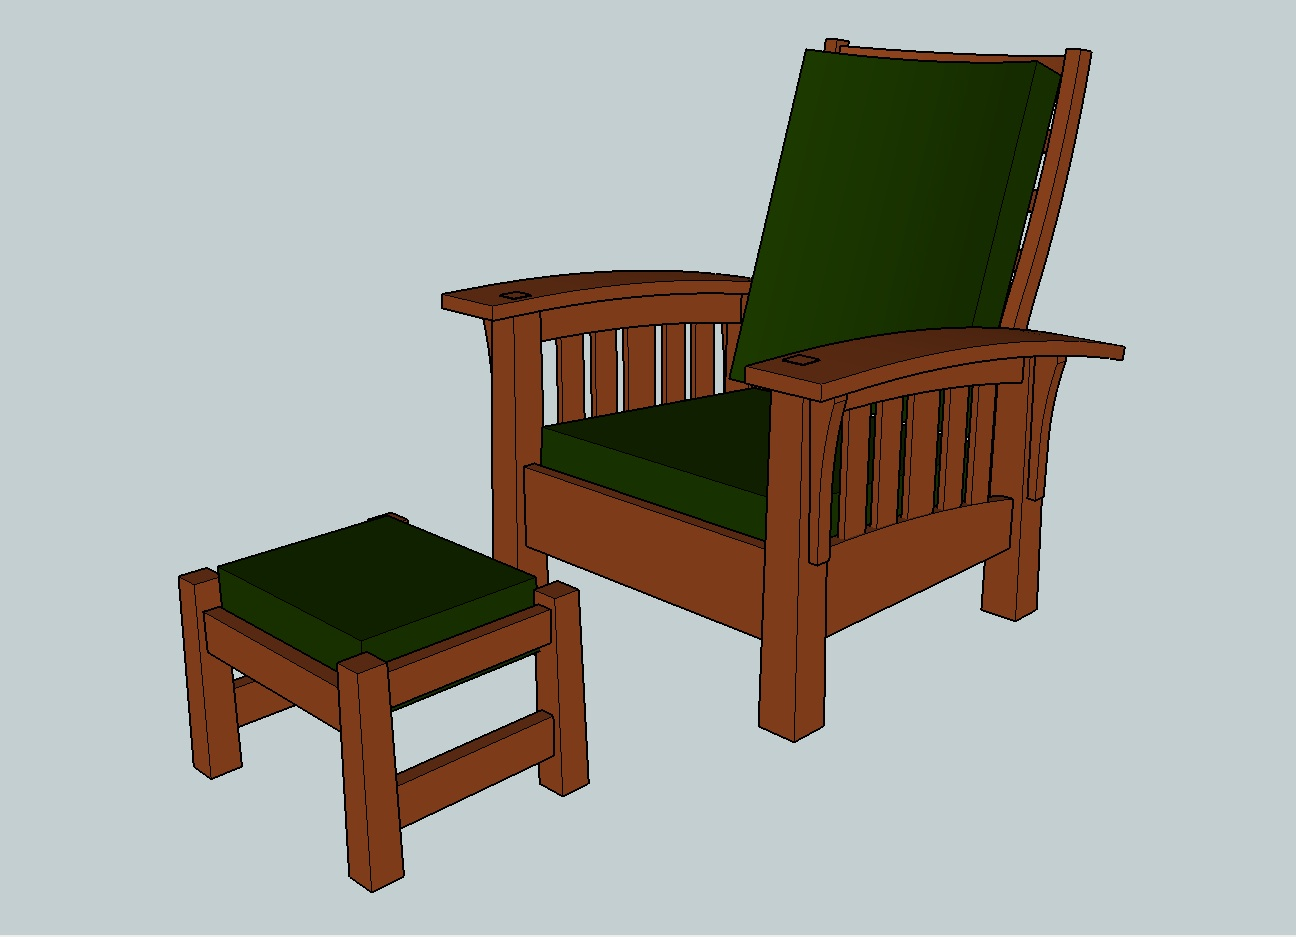 Morris chair plans - Get Ready Your Adventure Into The Morris Chair